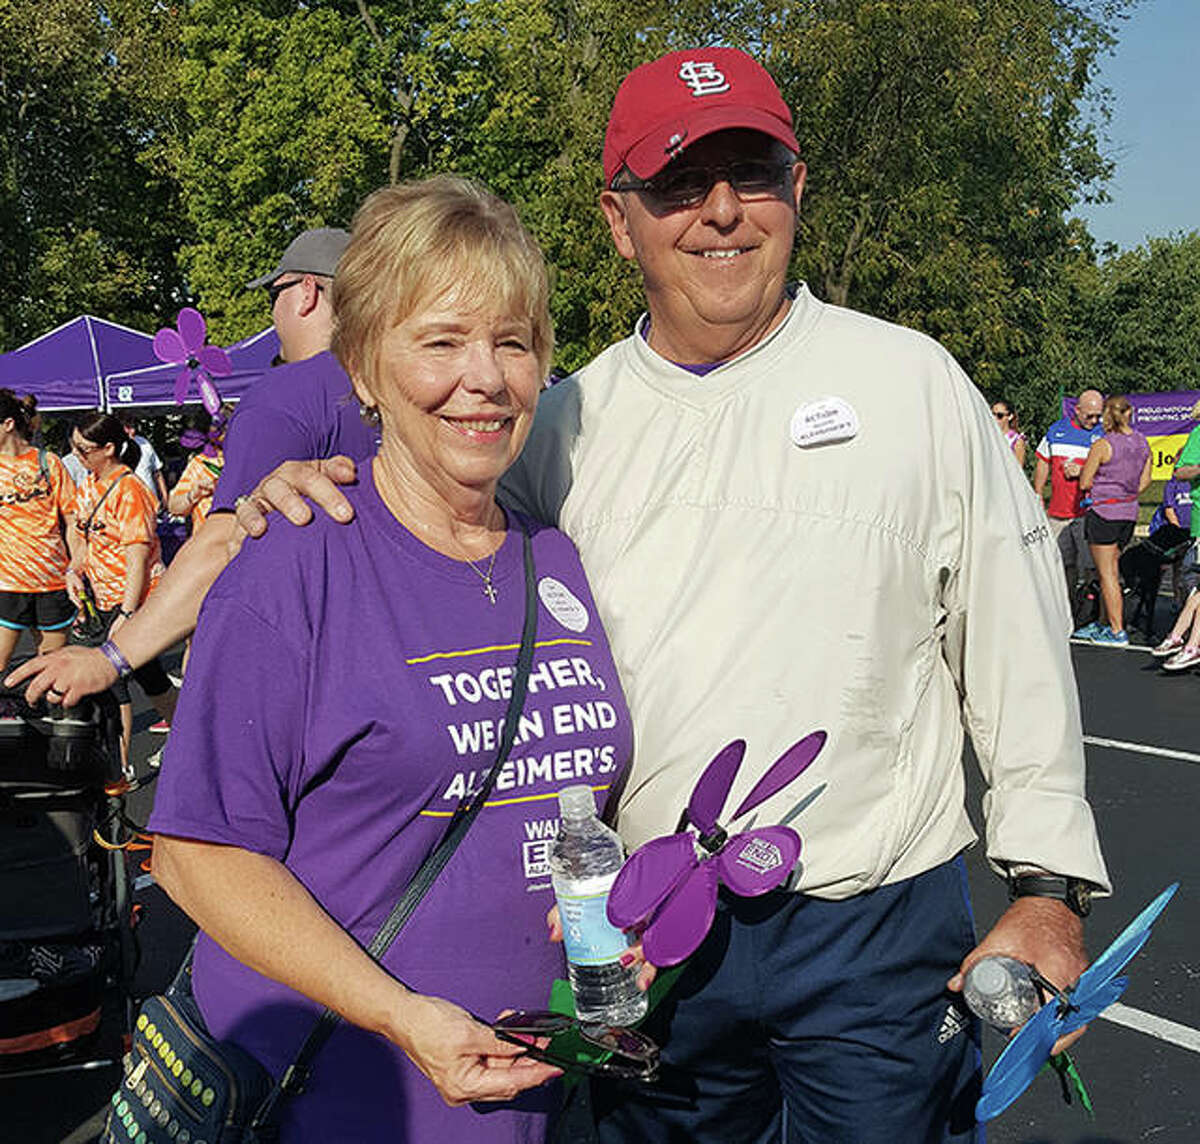 The late John Ostanik, right, with his wife, Mary Jane, at the 2017 Walk to End Alzheimer's in Edwardsville. Ostanik died from Alzheimer's on Feb. 17, 2021.